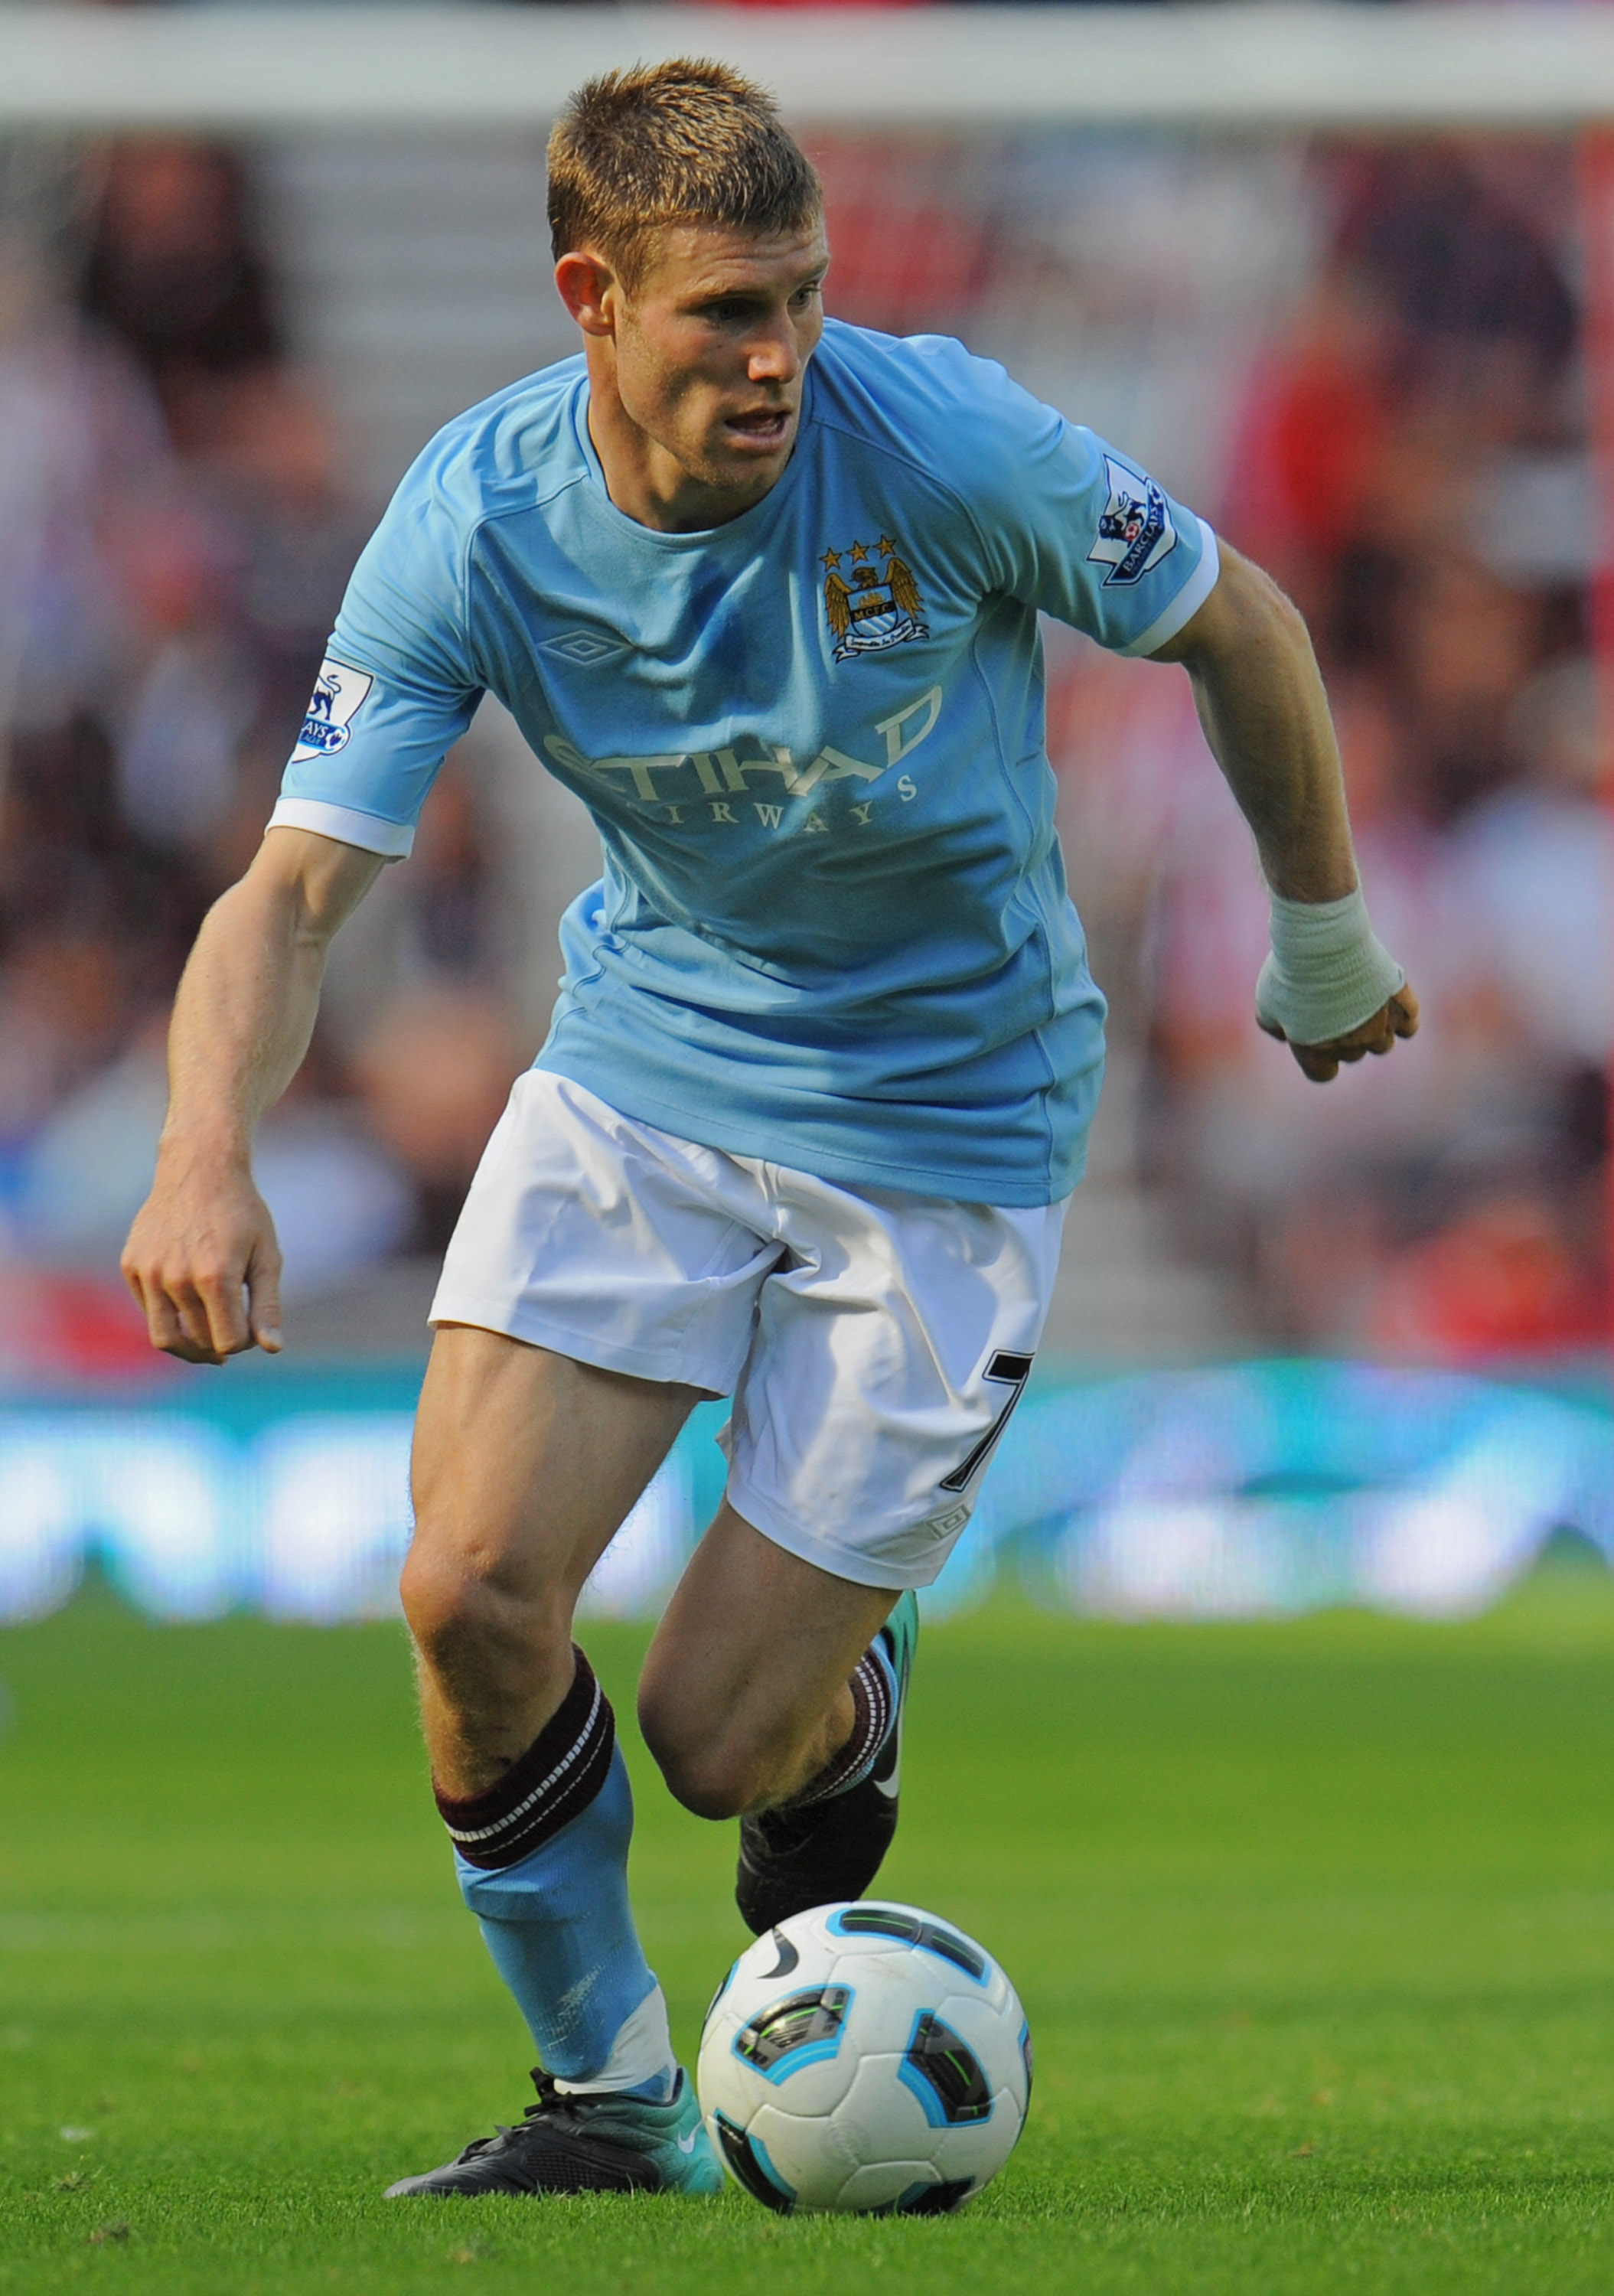 SUNDERLAND, ENGLAND - AUGUST 29: James Milner of Manchester City on the ball during the Barclays Premier League match between Sunderland and Manchester City at the Stadium of Light on August 29, 2010 in Sunderland, England.  (Photo by Michael Regan/Getty